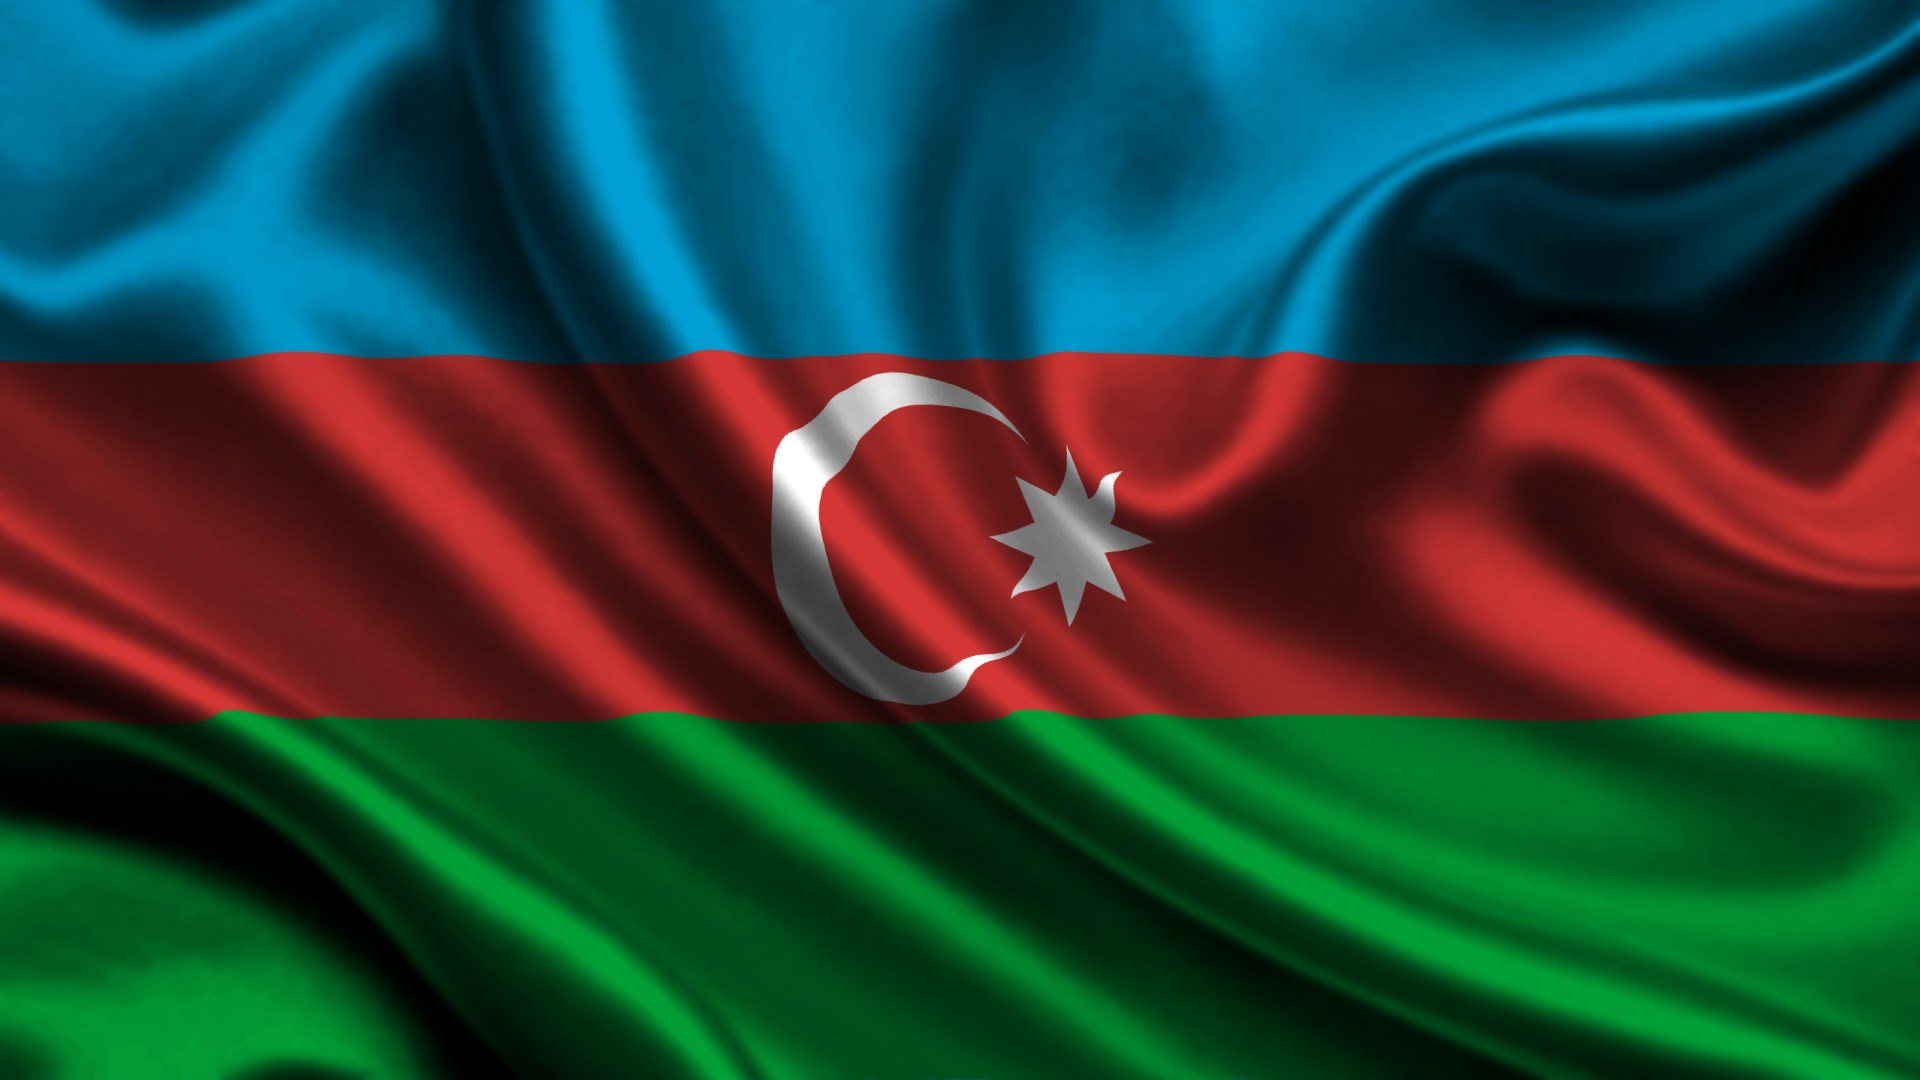 1920x1080-px-flag-of-azerbaijan-for-mac-computers-by-Jasper-Walls-wallpaper-wp340882